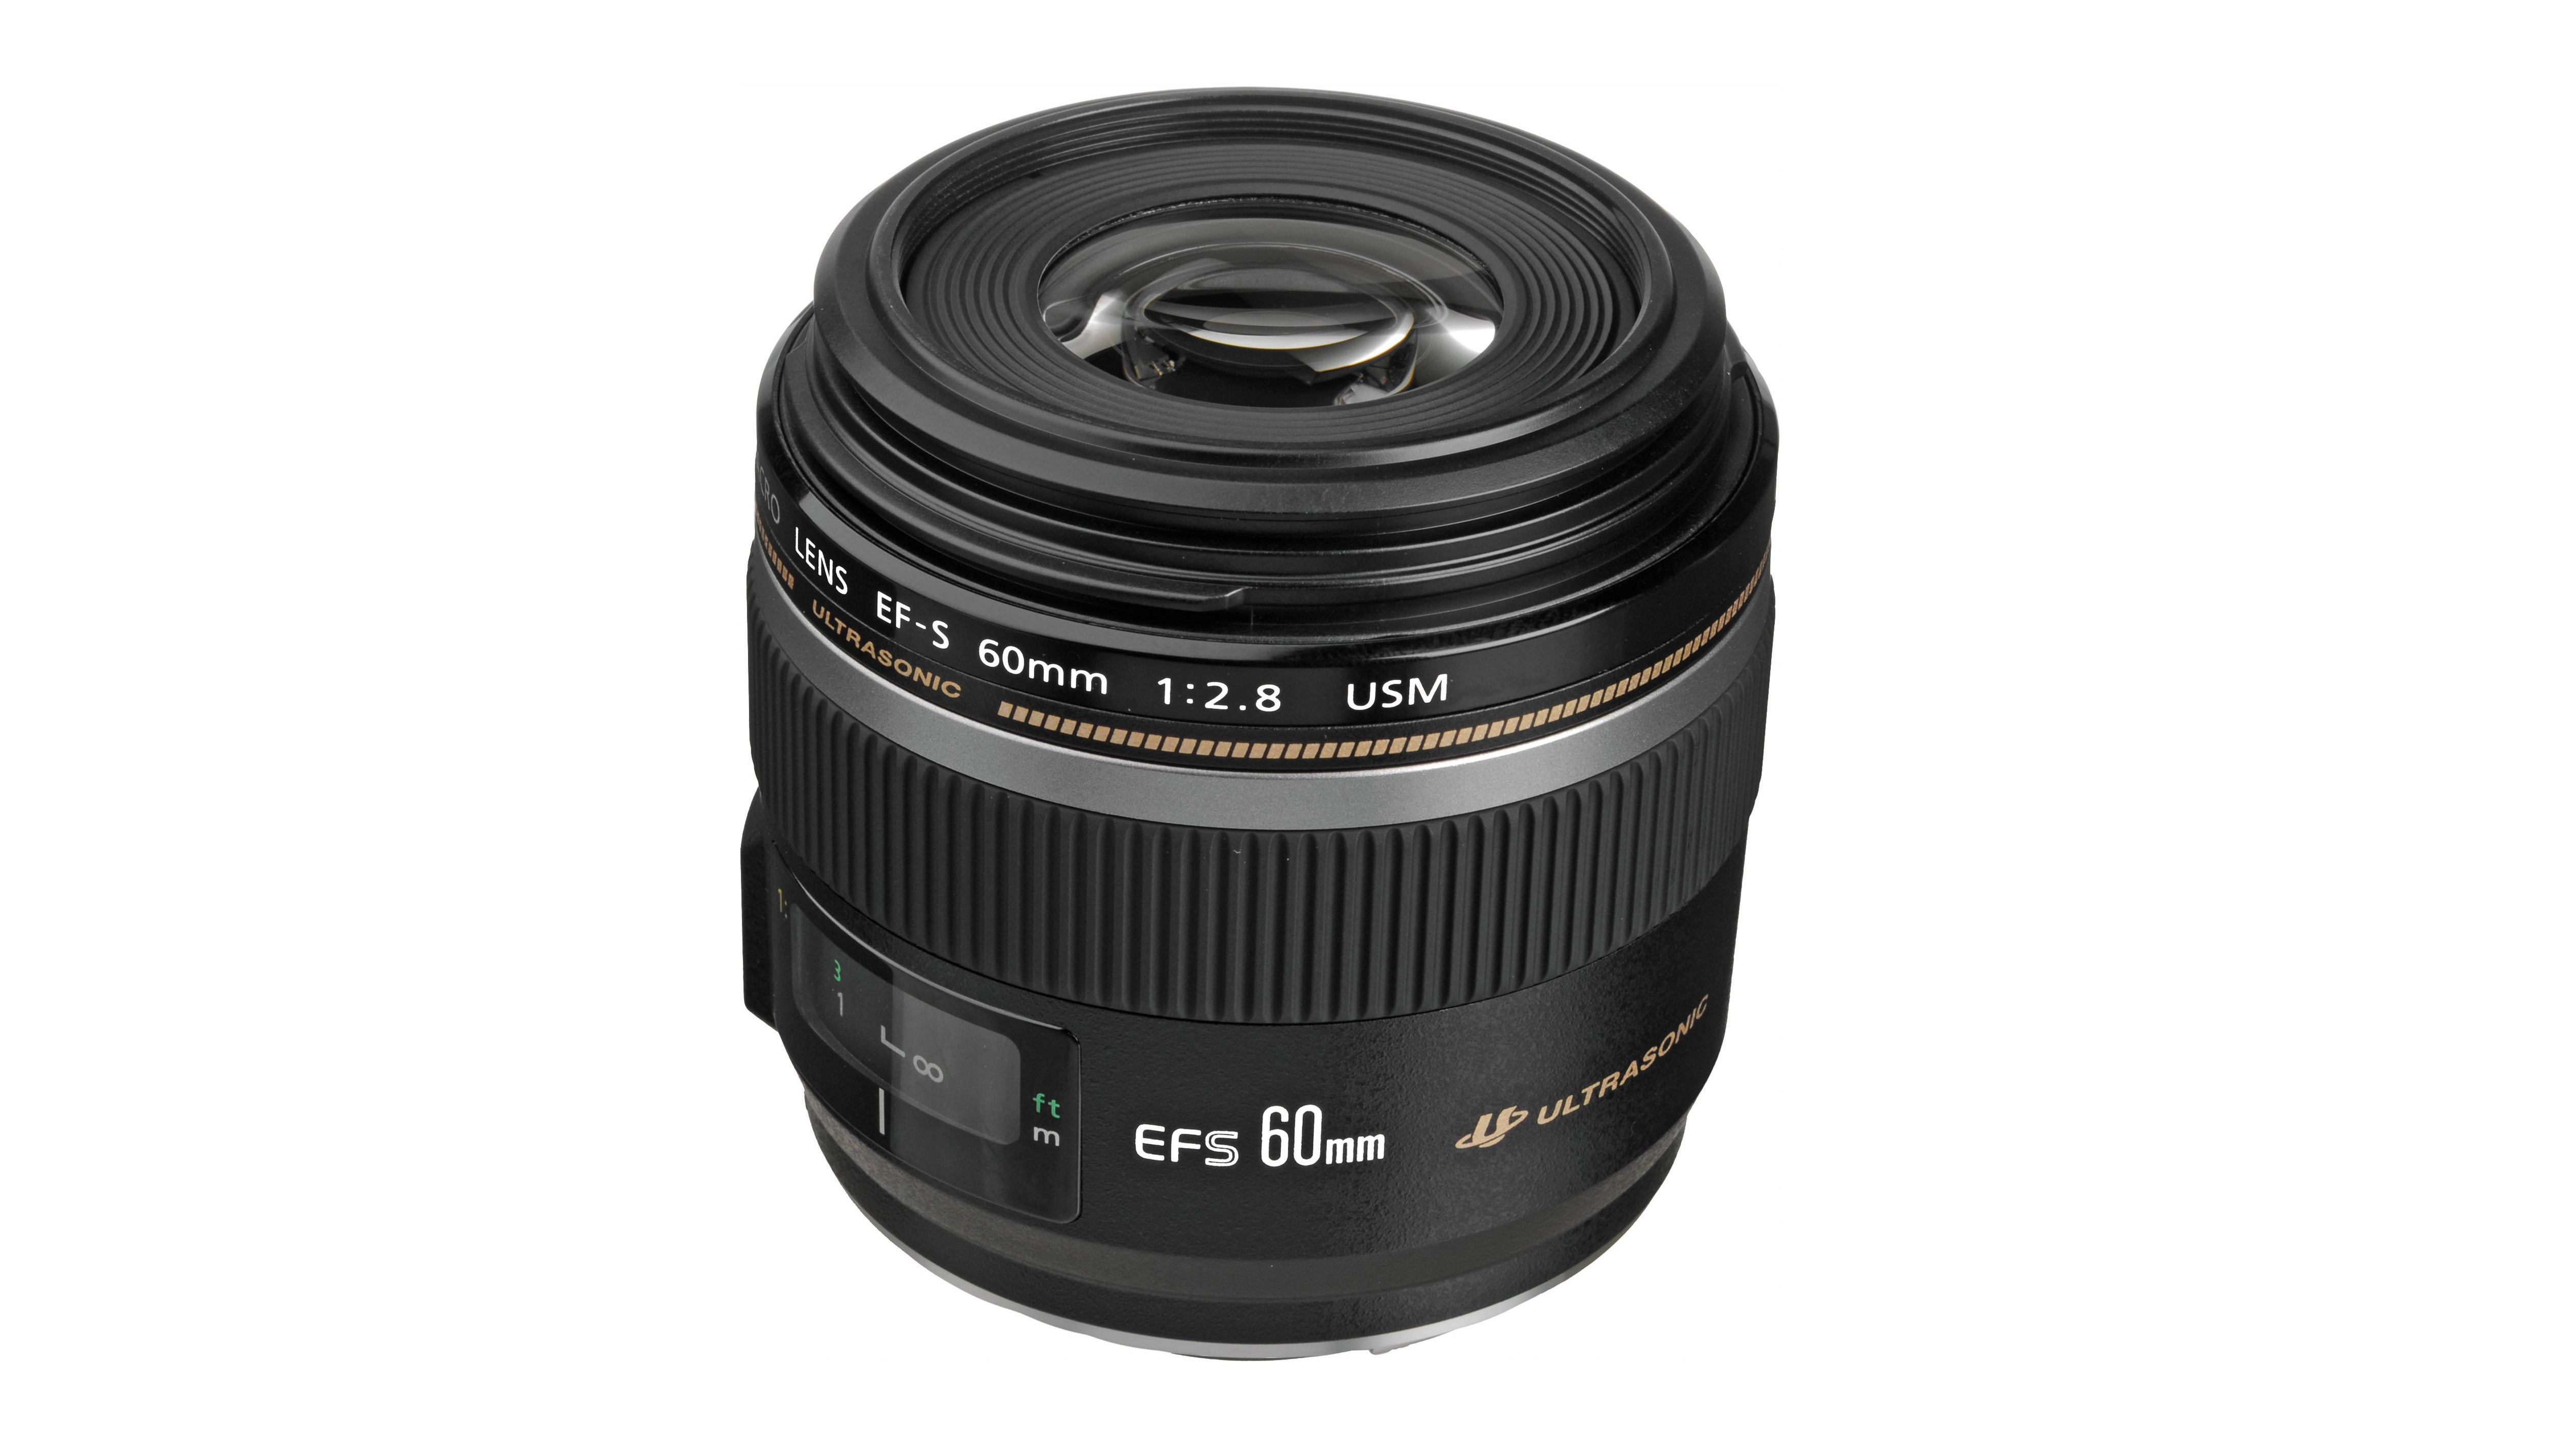 Canon EF-S 60mm f/2.8